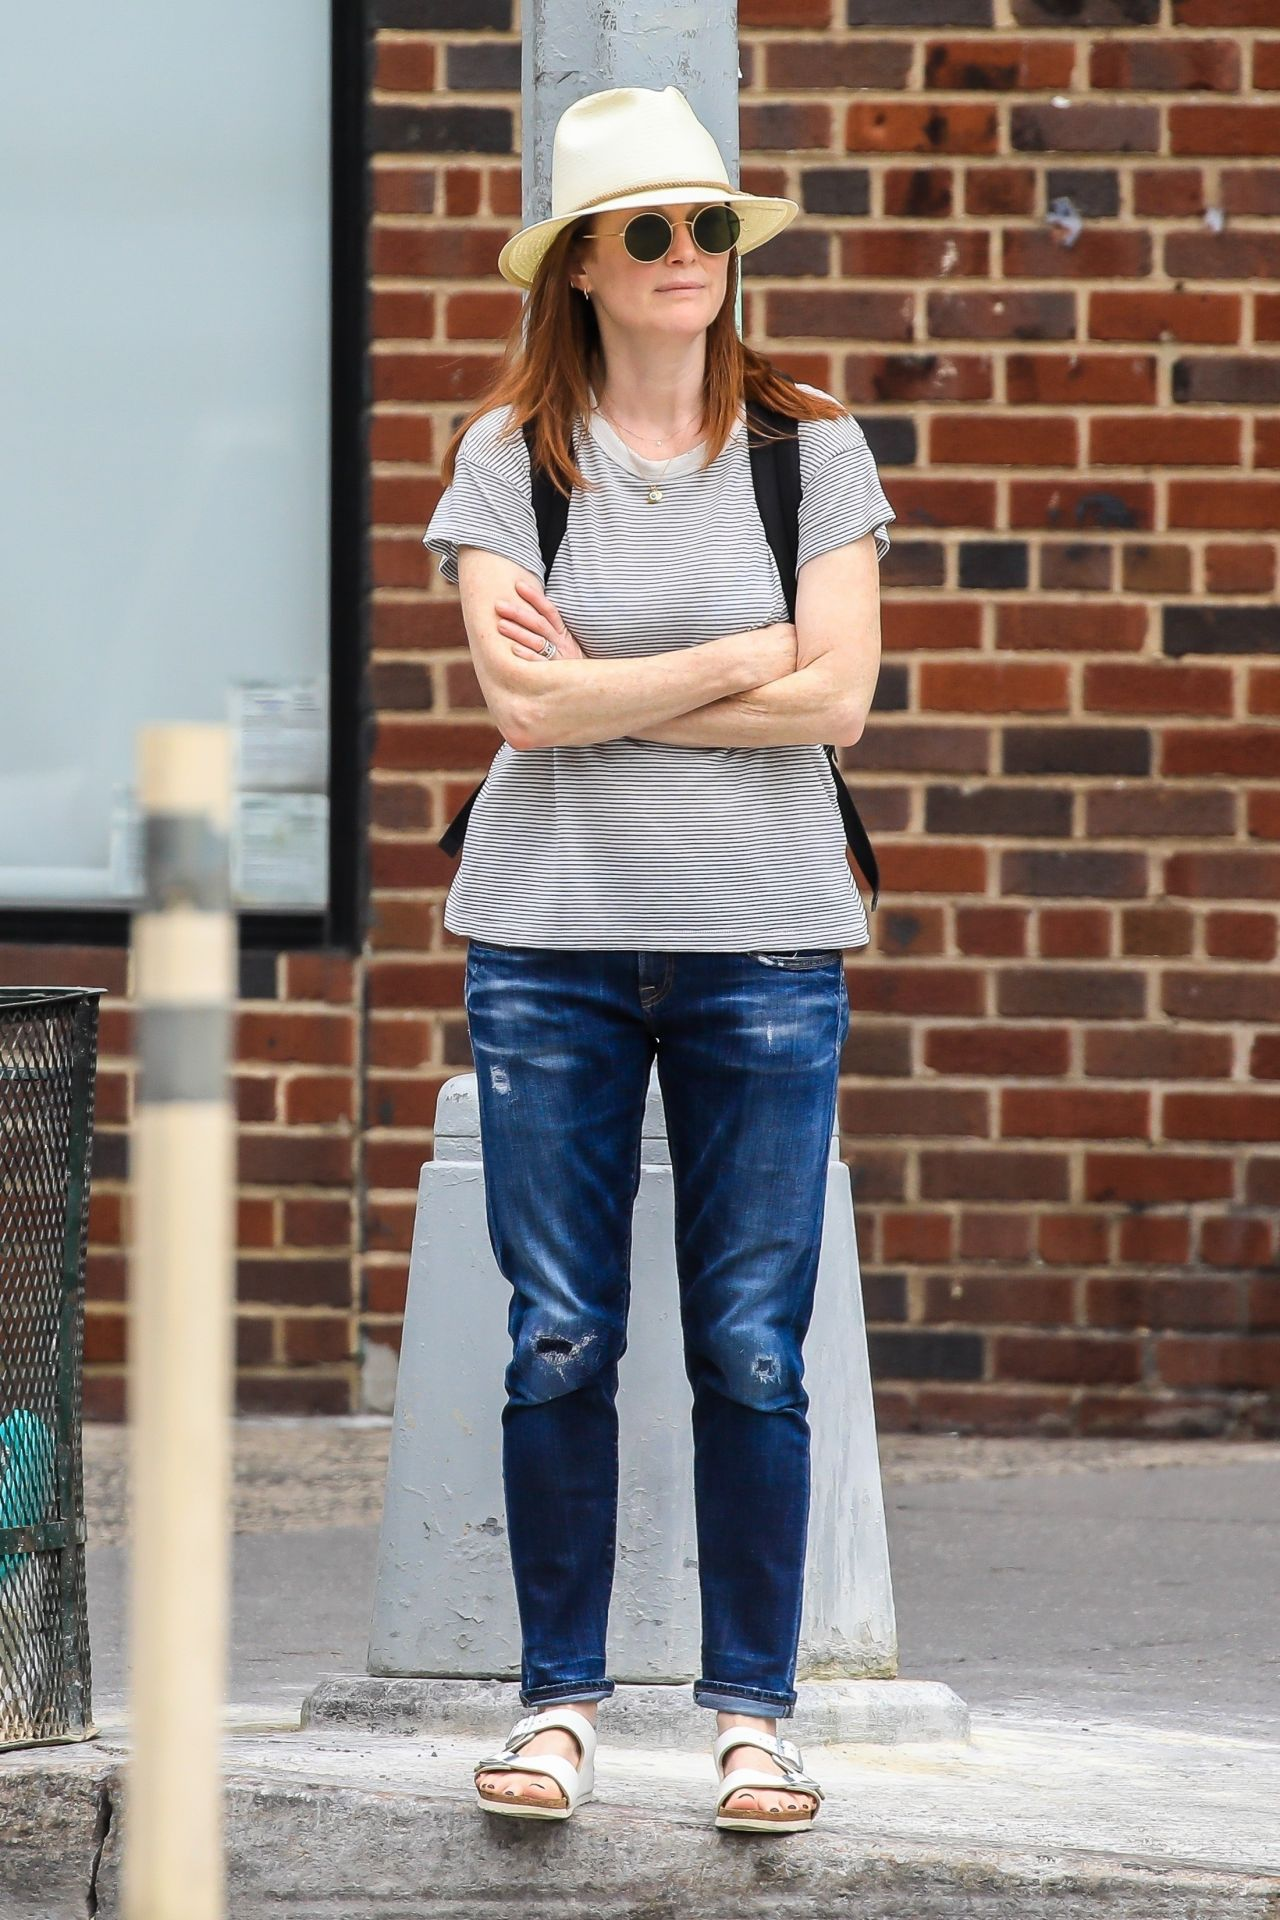 Julianne Moore Out In Nyc 07 13 2019